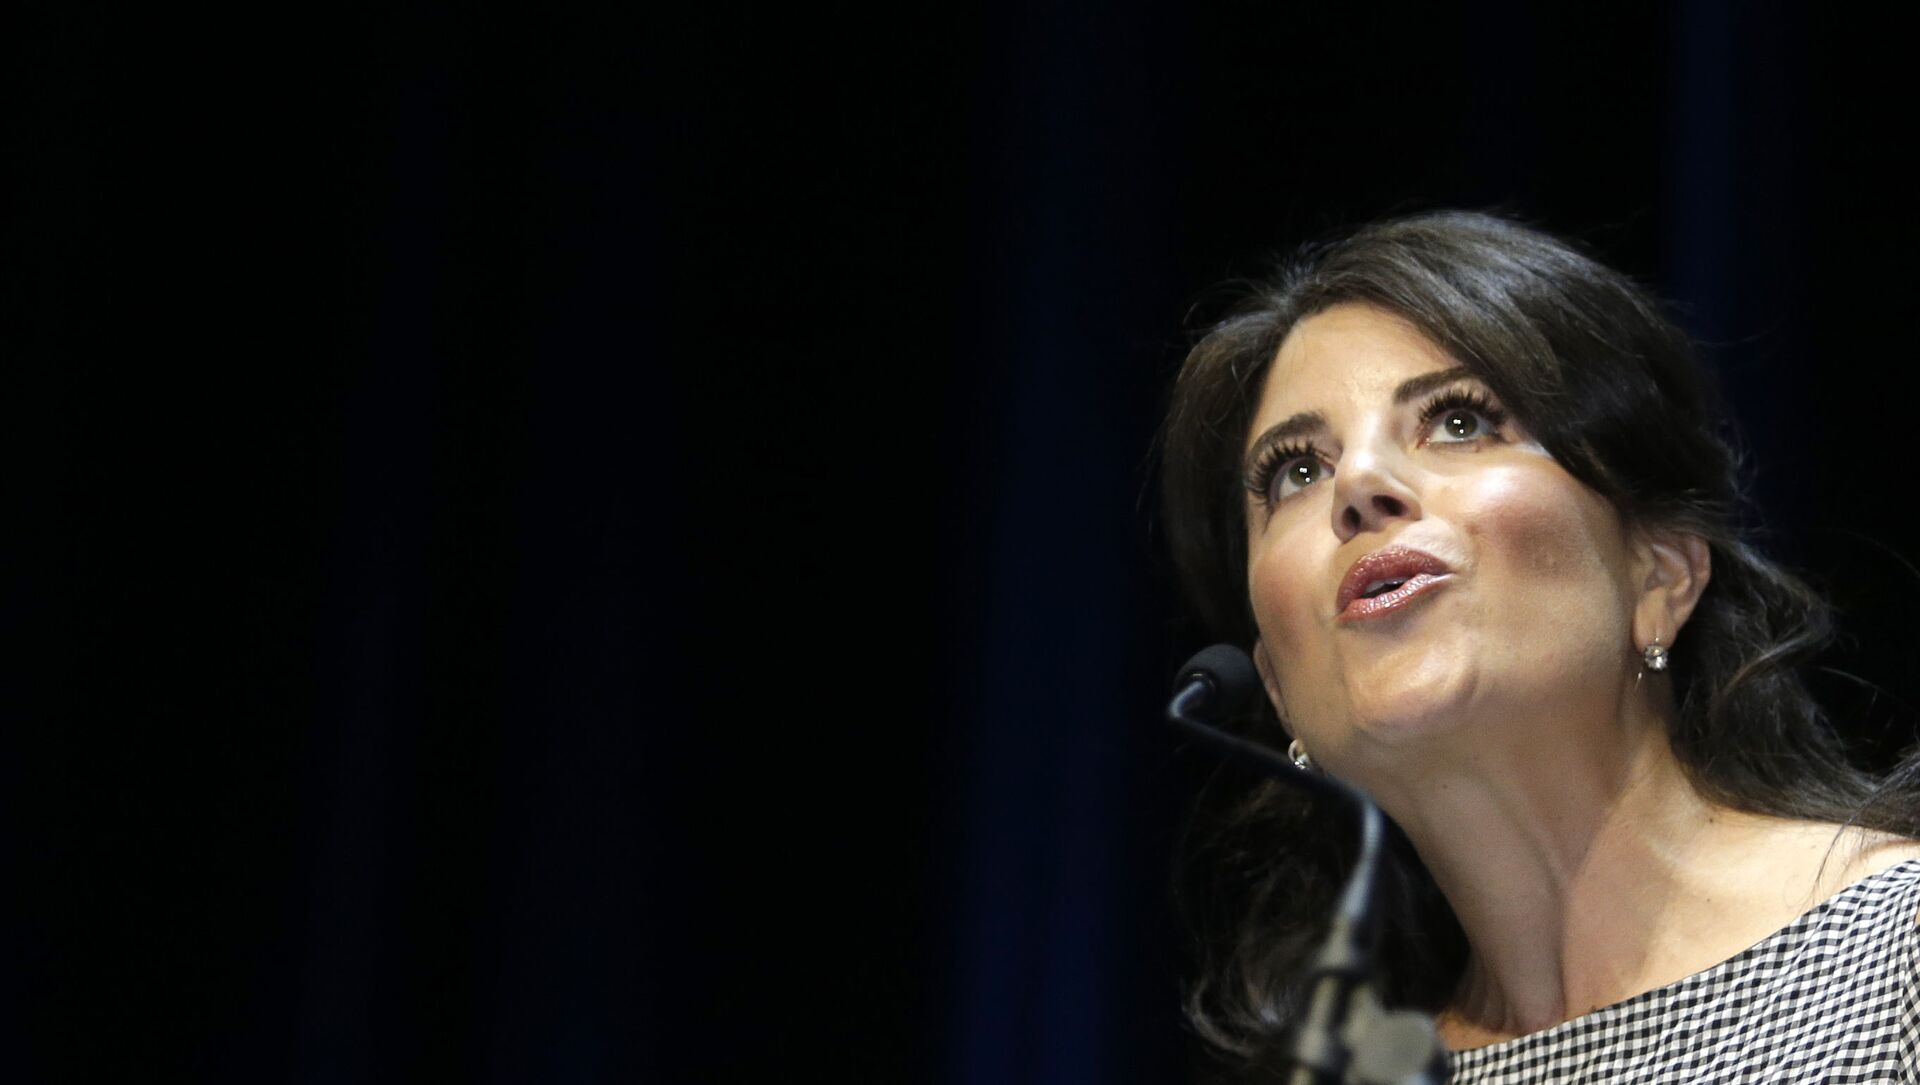 US former White house intern Monica Lewinsky attends at the Cannes Lions 2015, International Advertising Festival in Cannes, southern France, Thursday, June 25, 2015 - Sputnik International, 1920, 27.08.2021